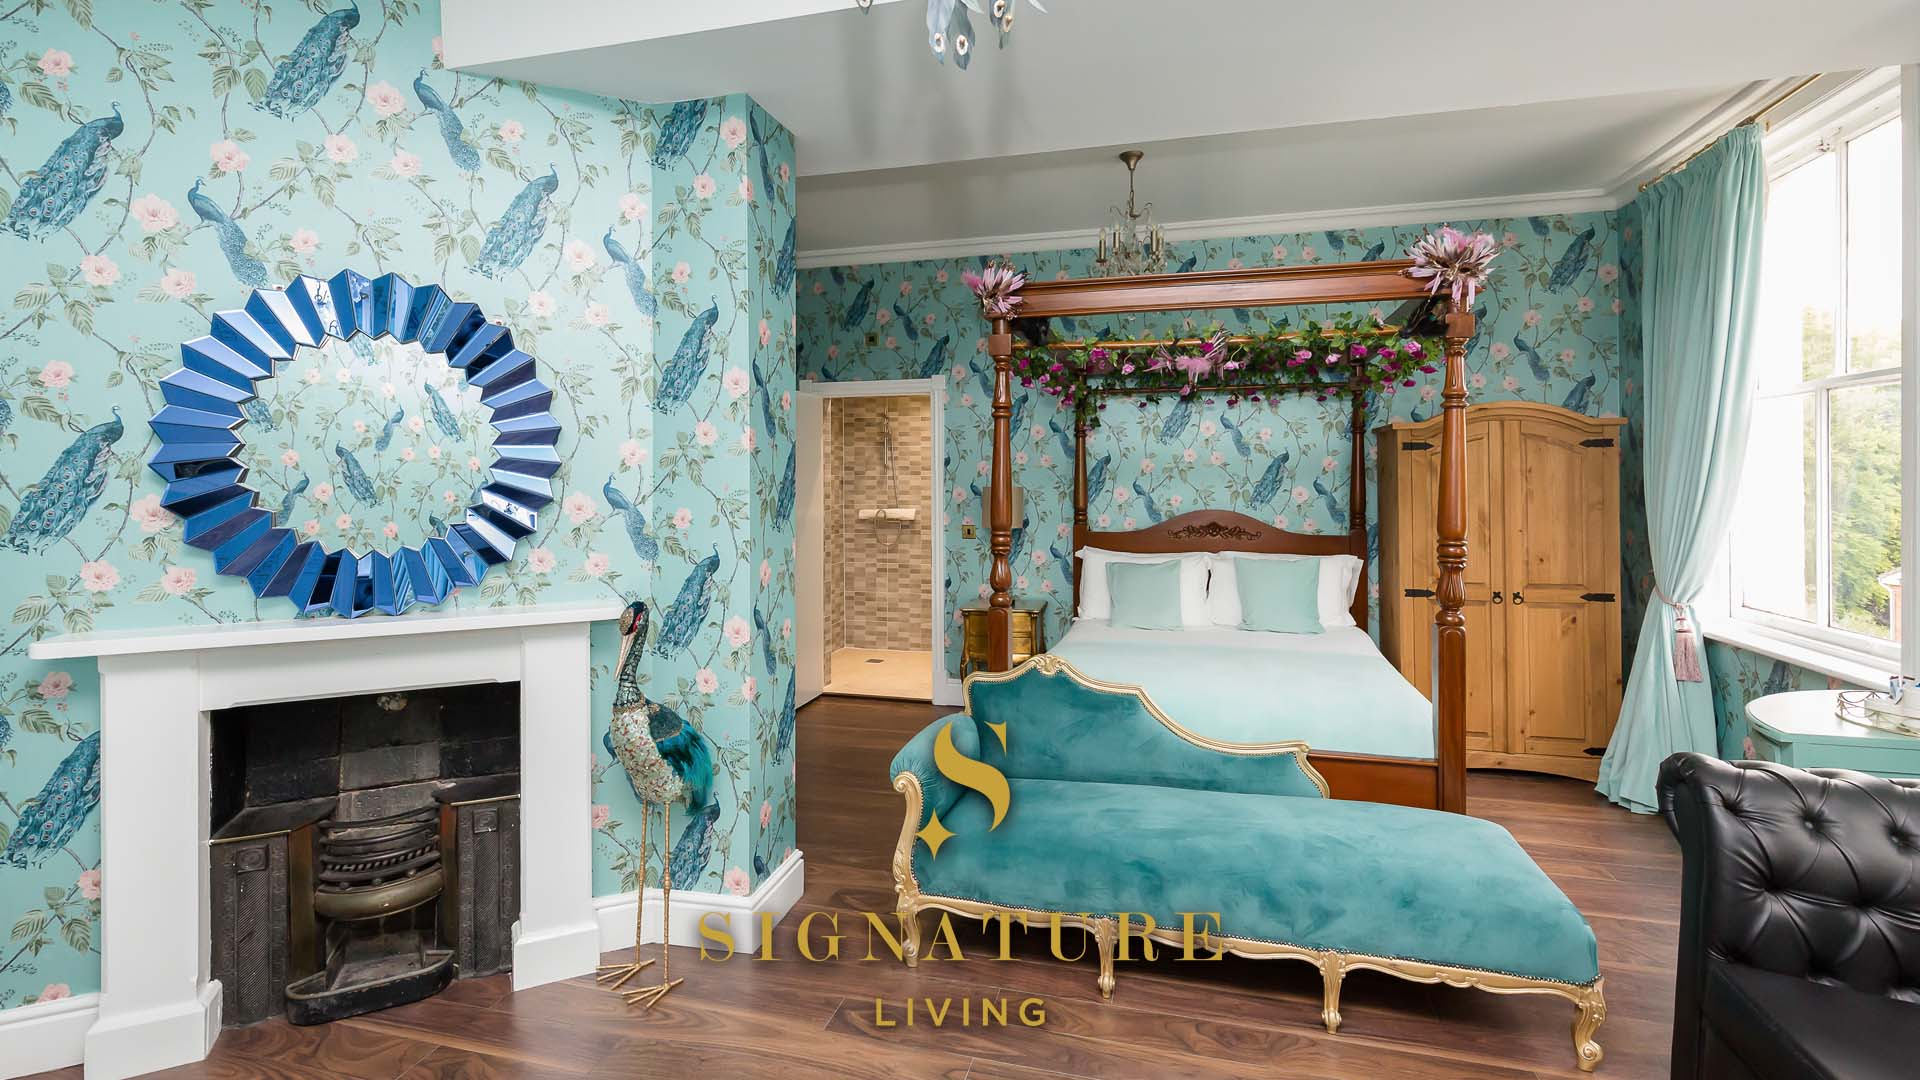 Rainhill Hall Family Stay and Dine by Signature Living